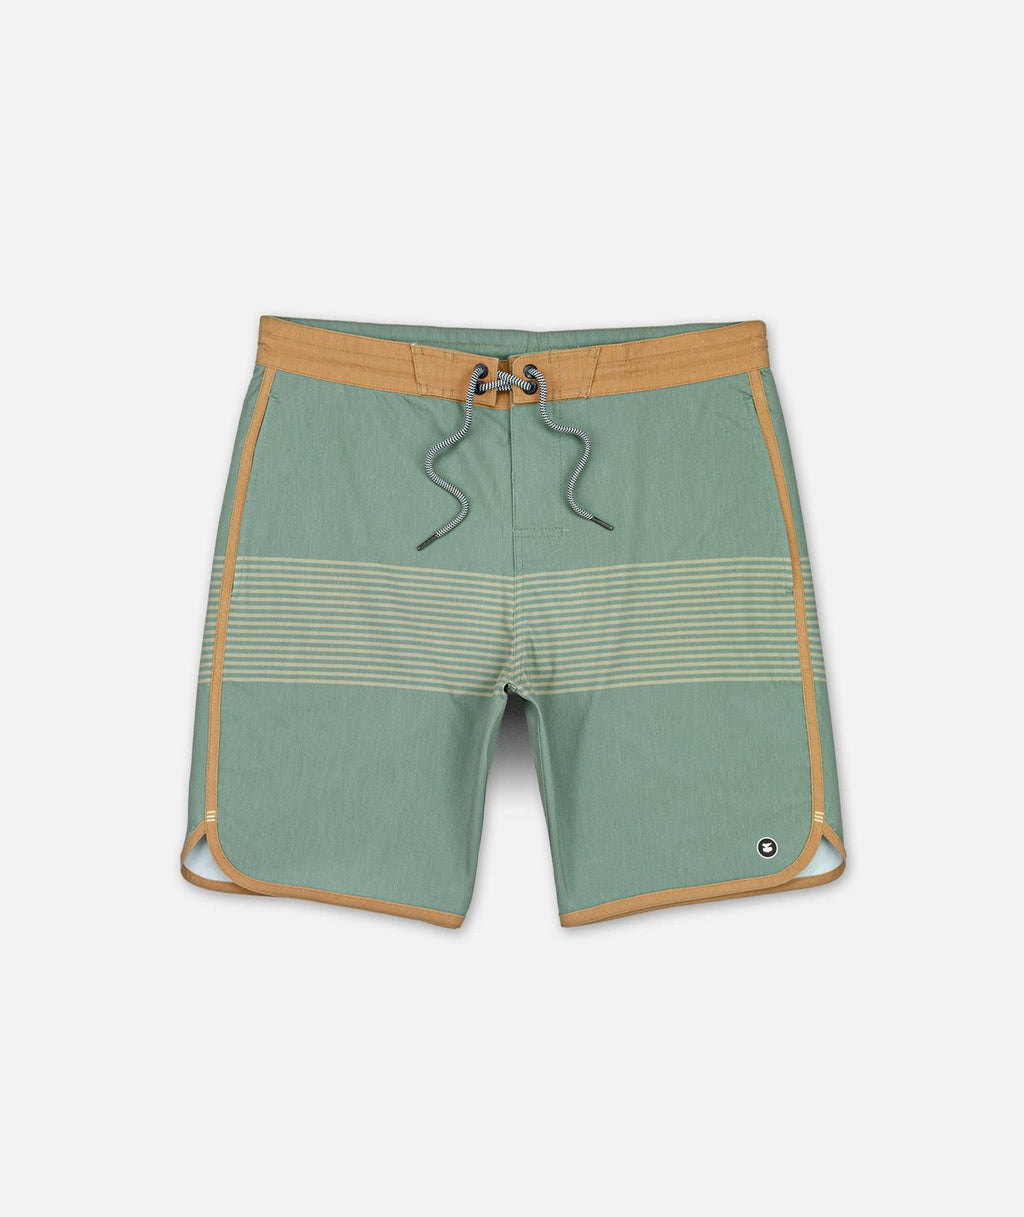 JETTY SANDBAR BOARDSHORT